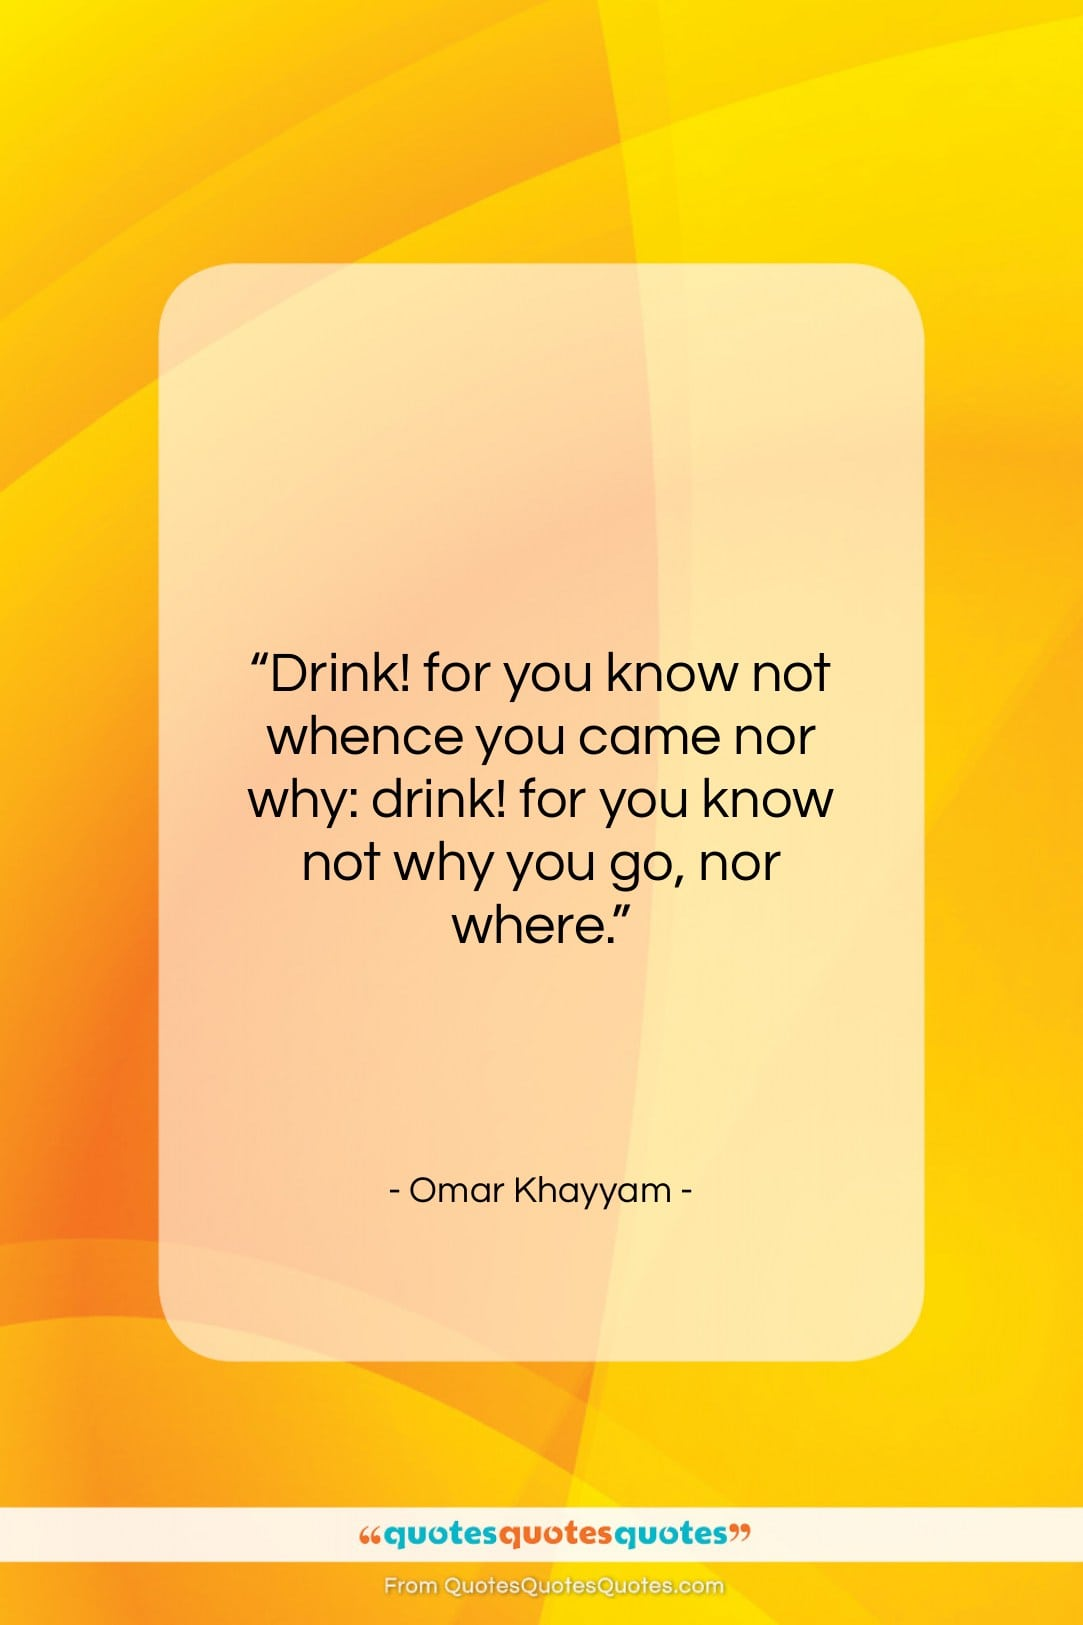 """Omar Khayyam quote: """"Drink! for you know not whence you…""""- at QuotesQuotesQuotes.com"""